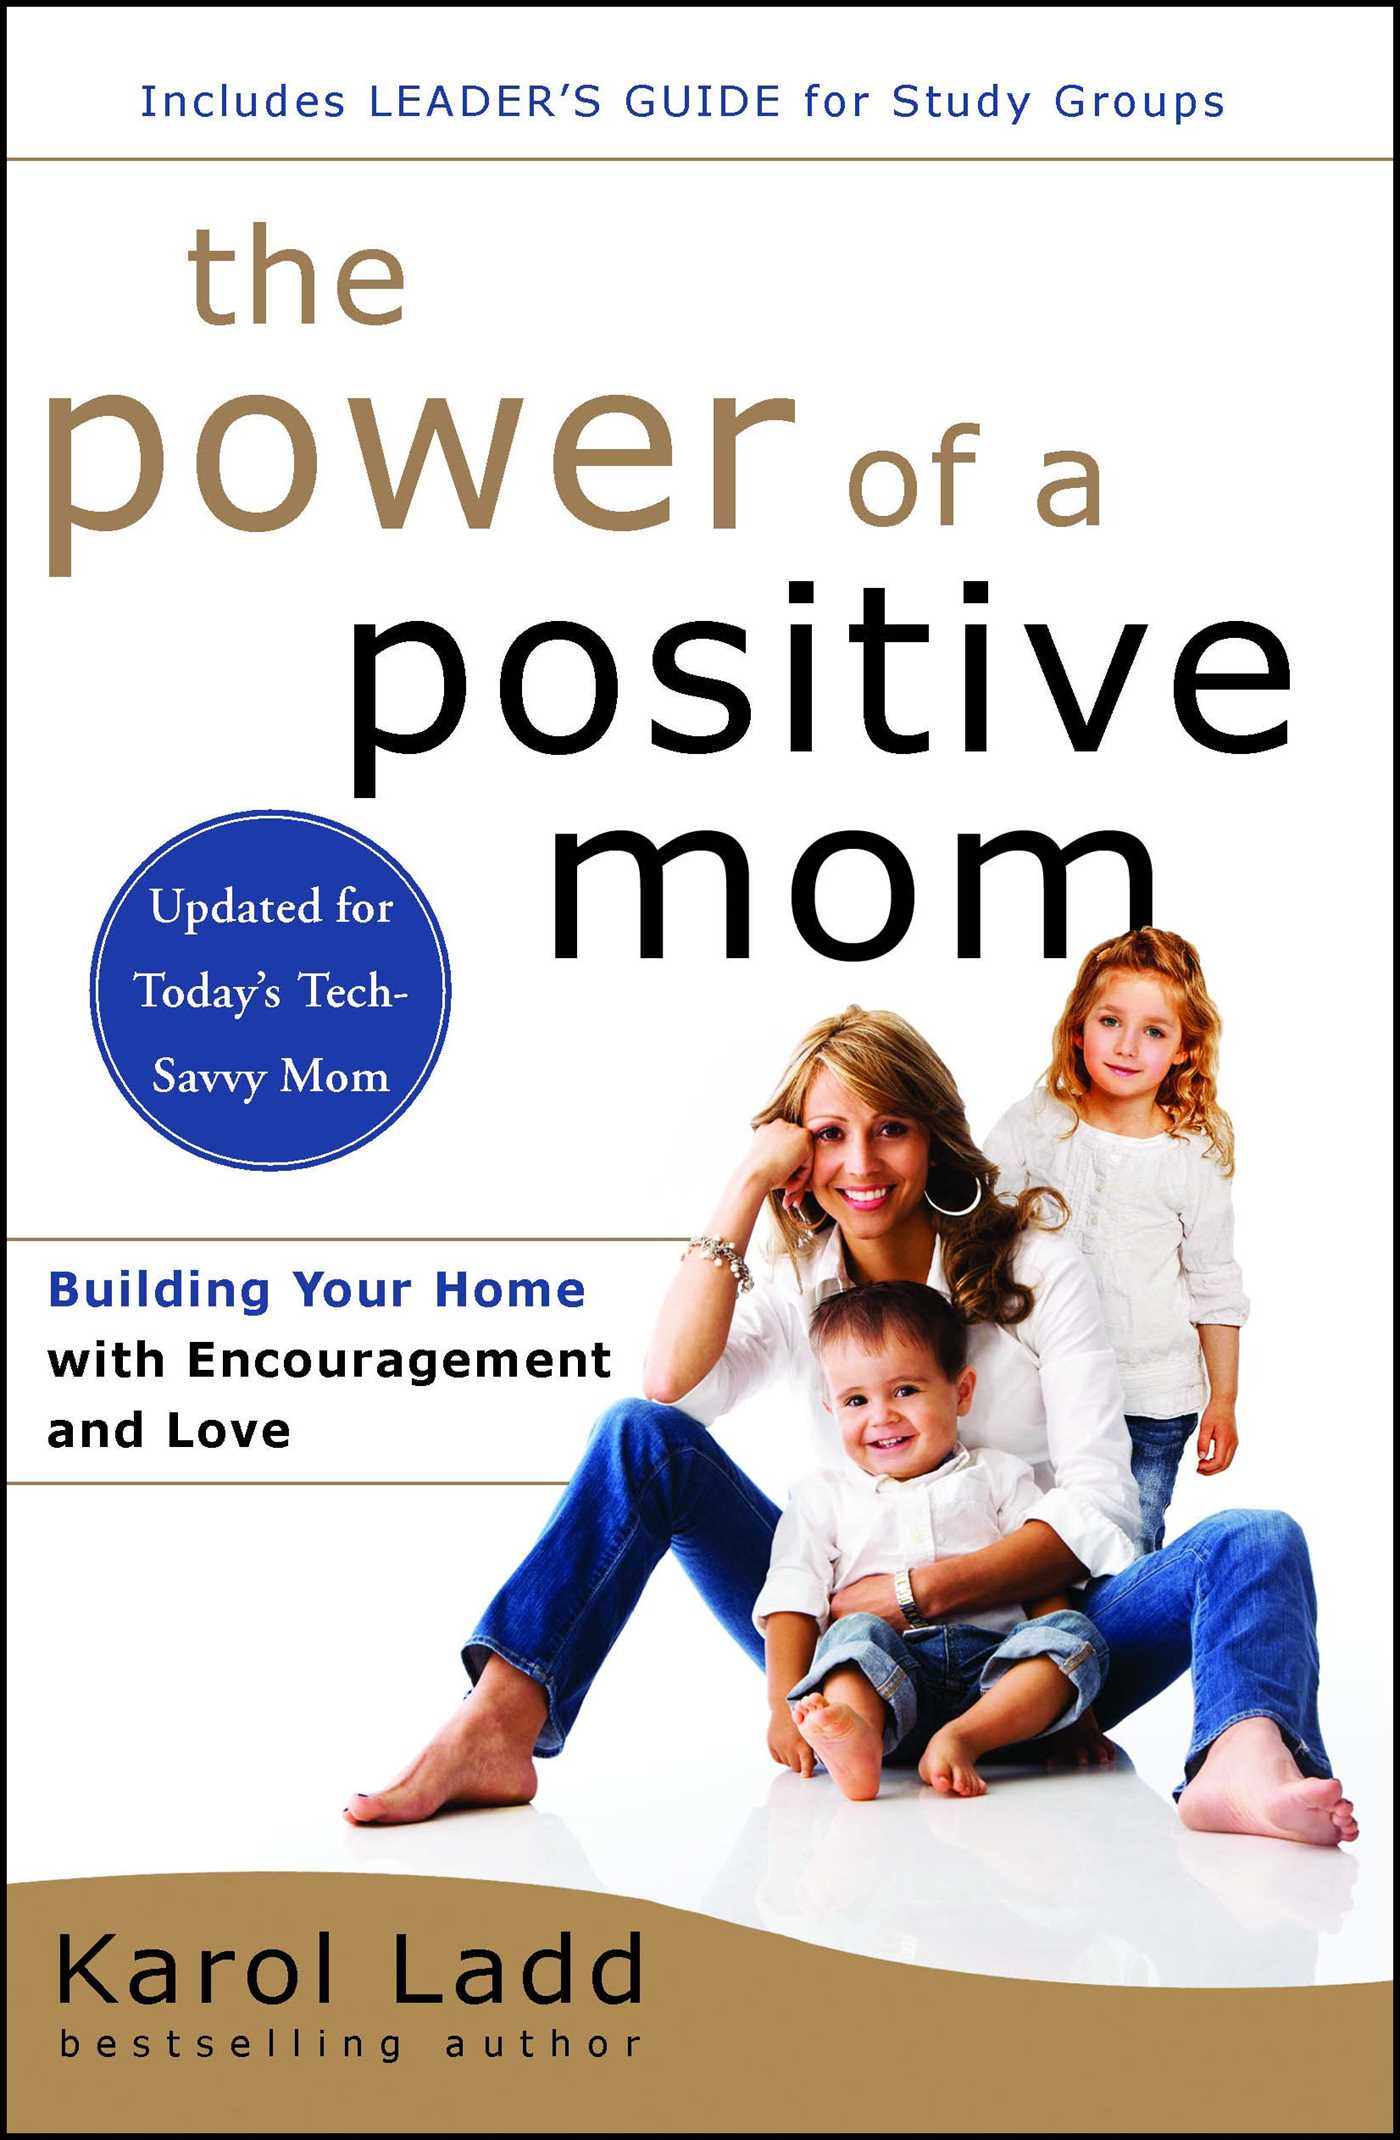 The power of a positive mom 9781501105234 hr